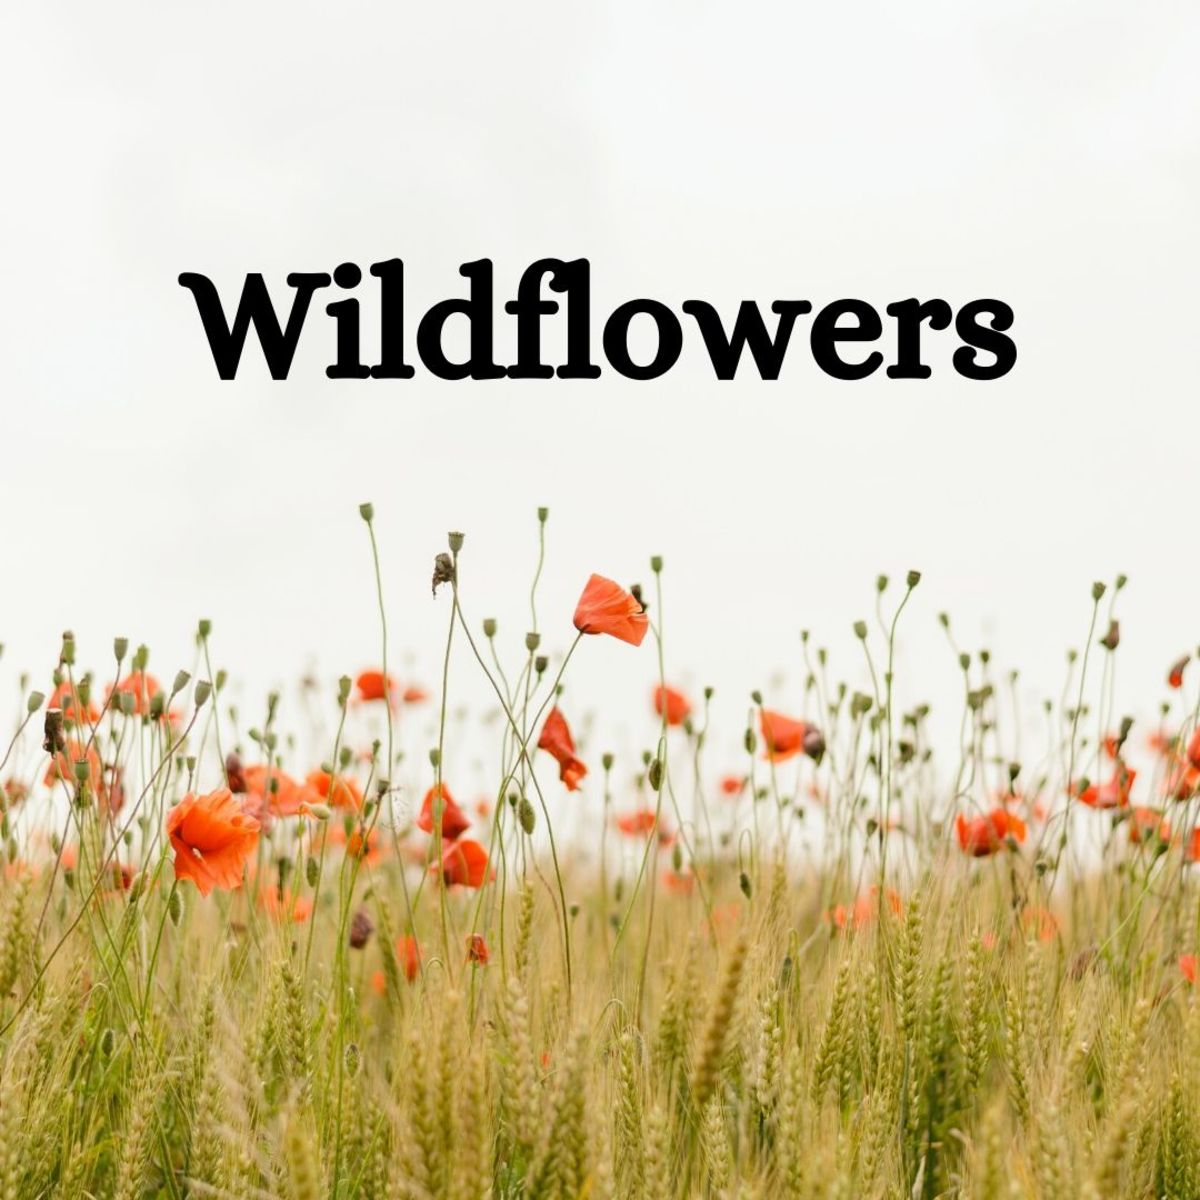 Wildflowers—you can collect them for free, and they're beautiful!